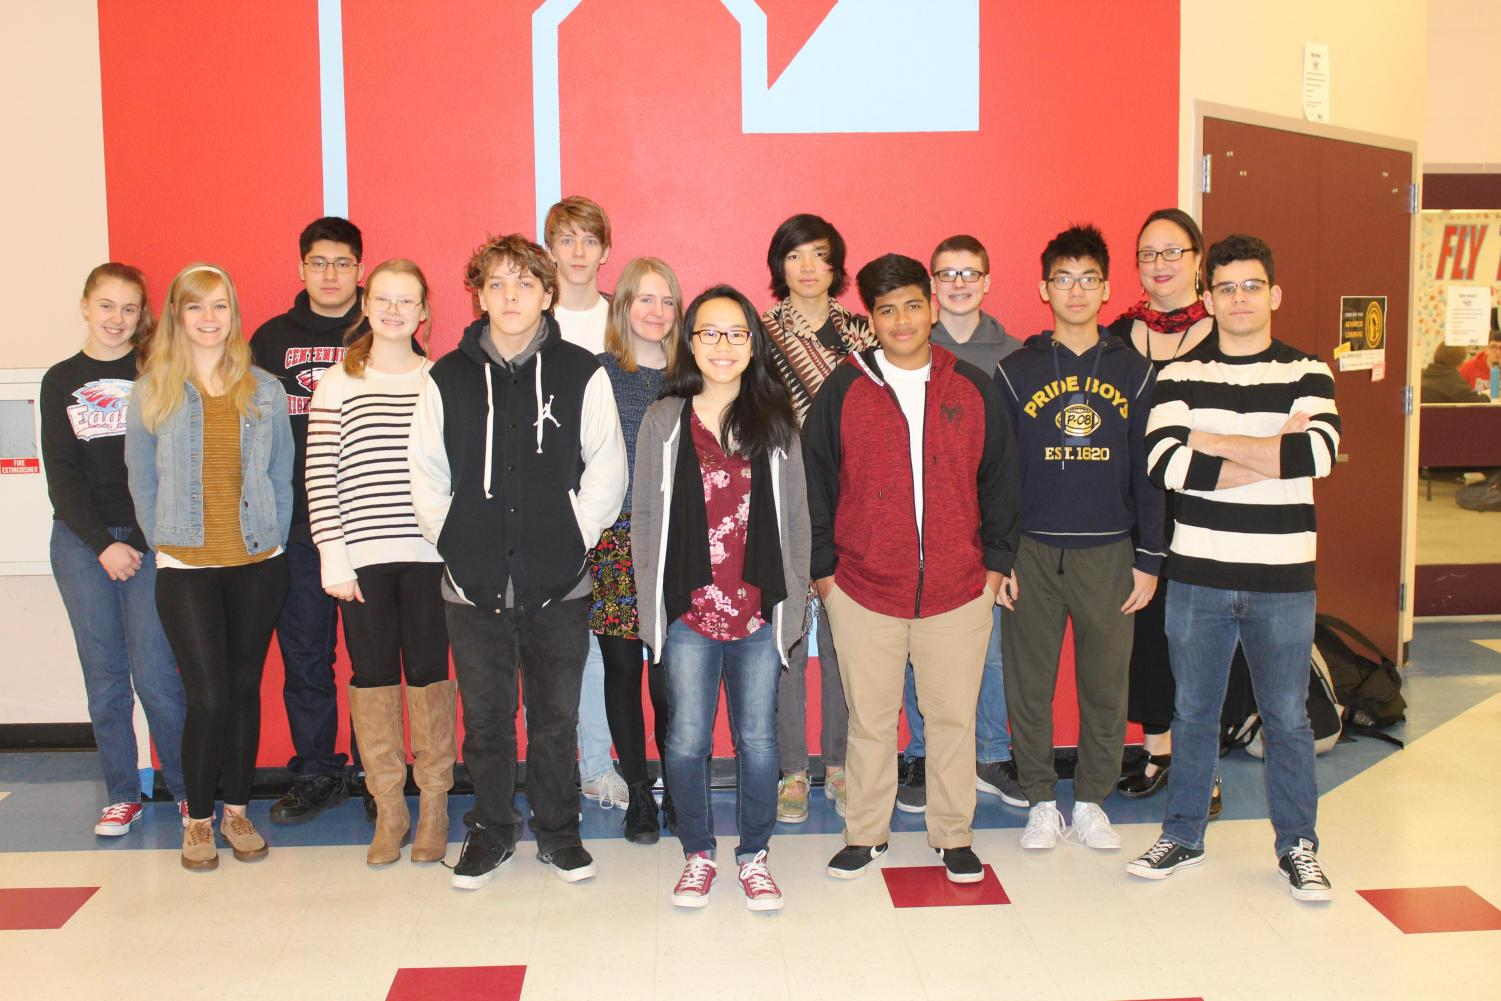 Speech and Debate Team gather together. The Speech Team dominated their latest tournament.